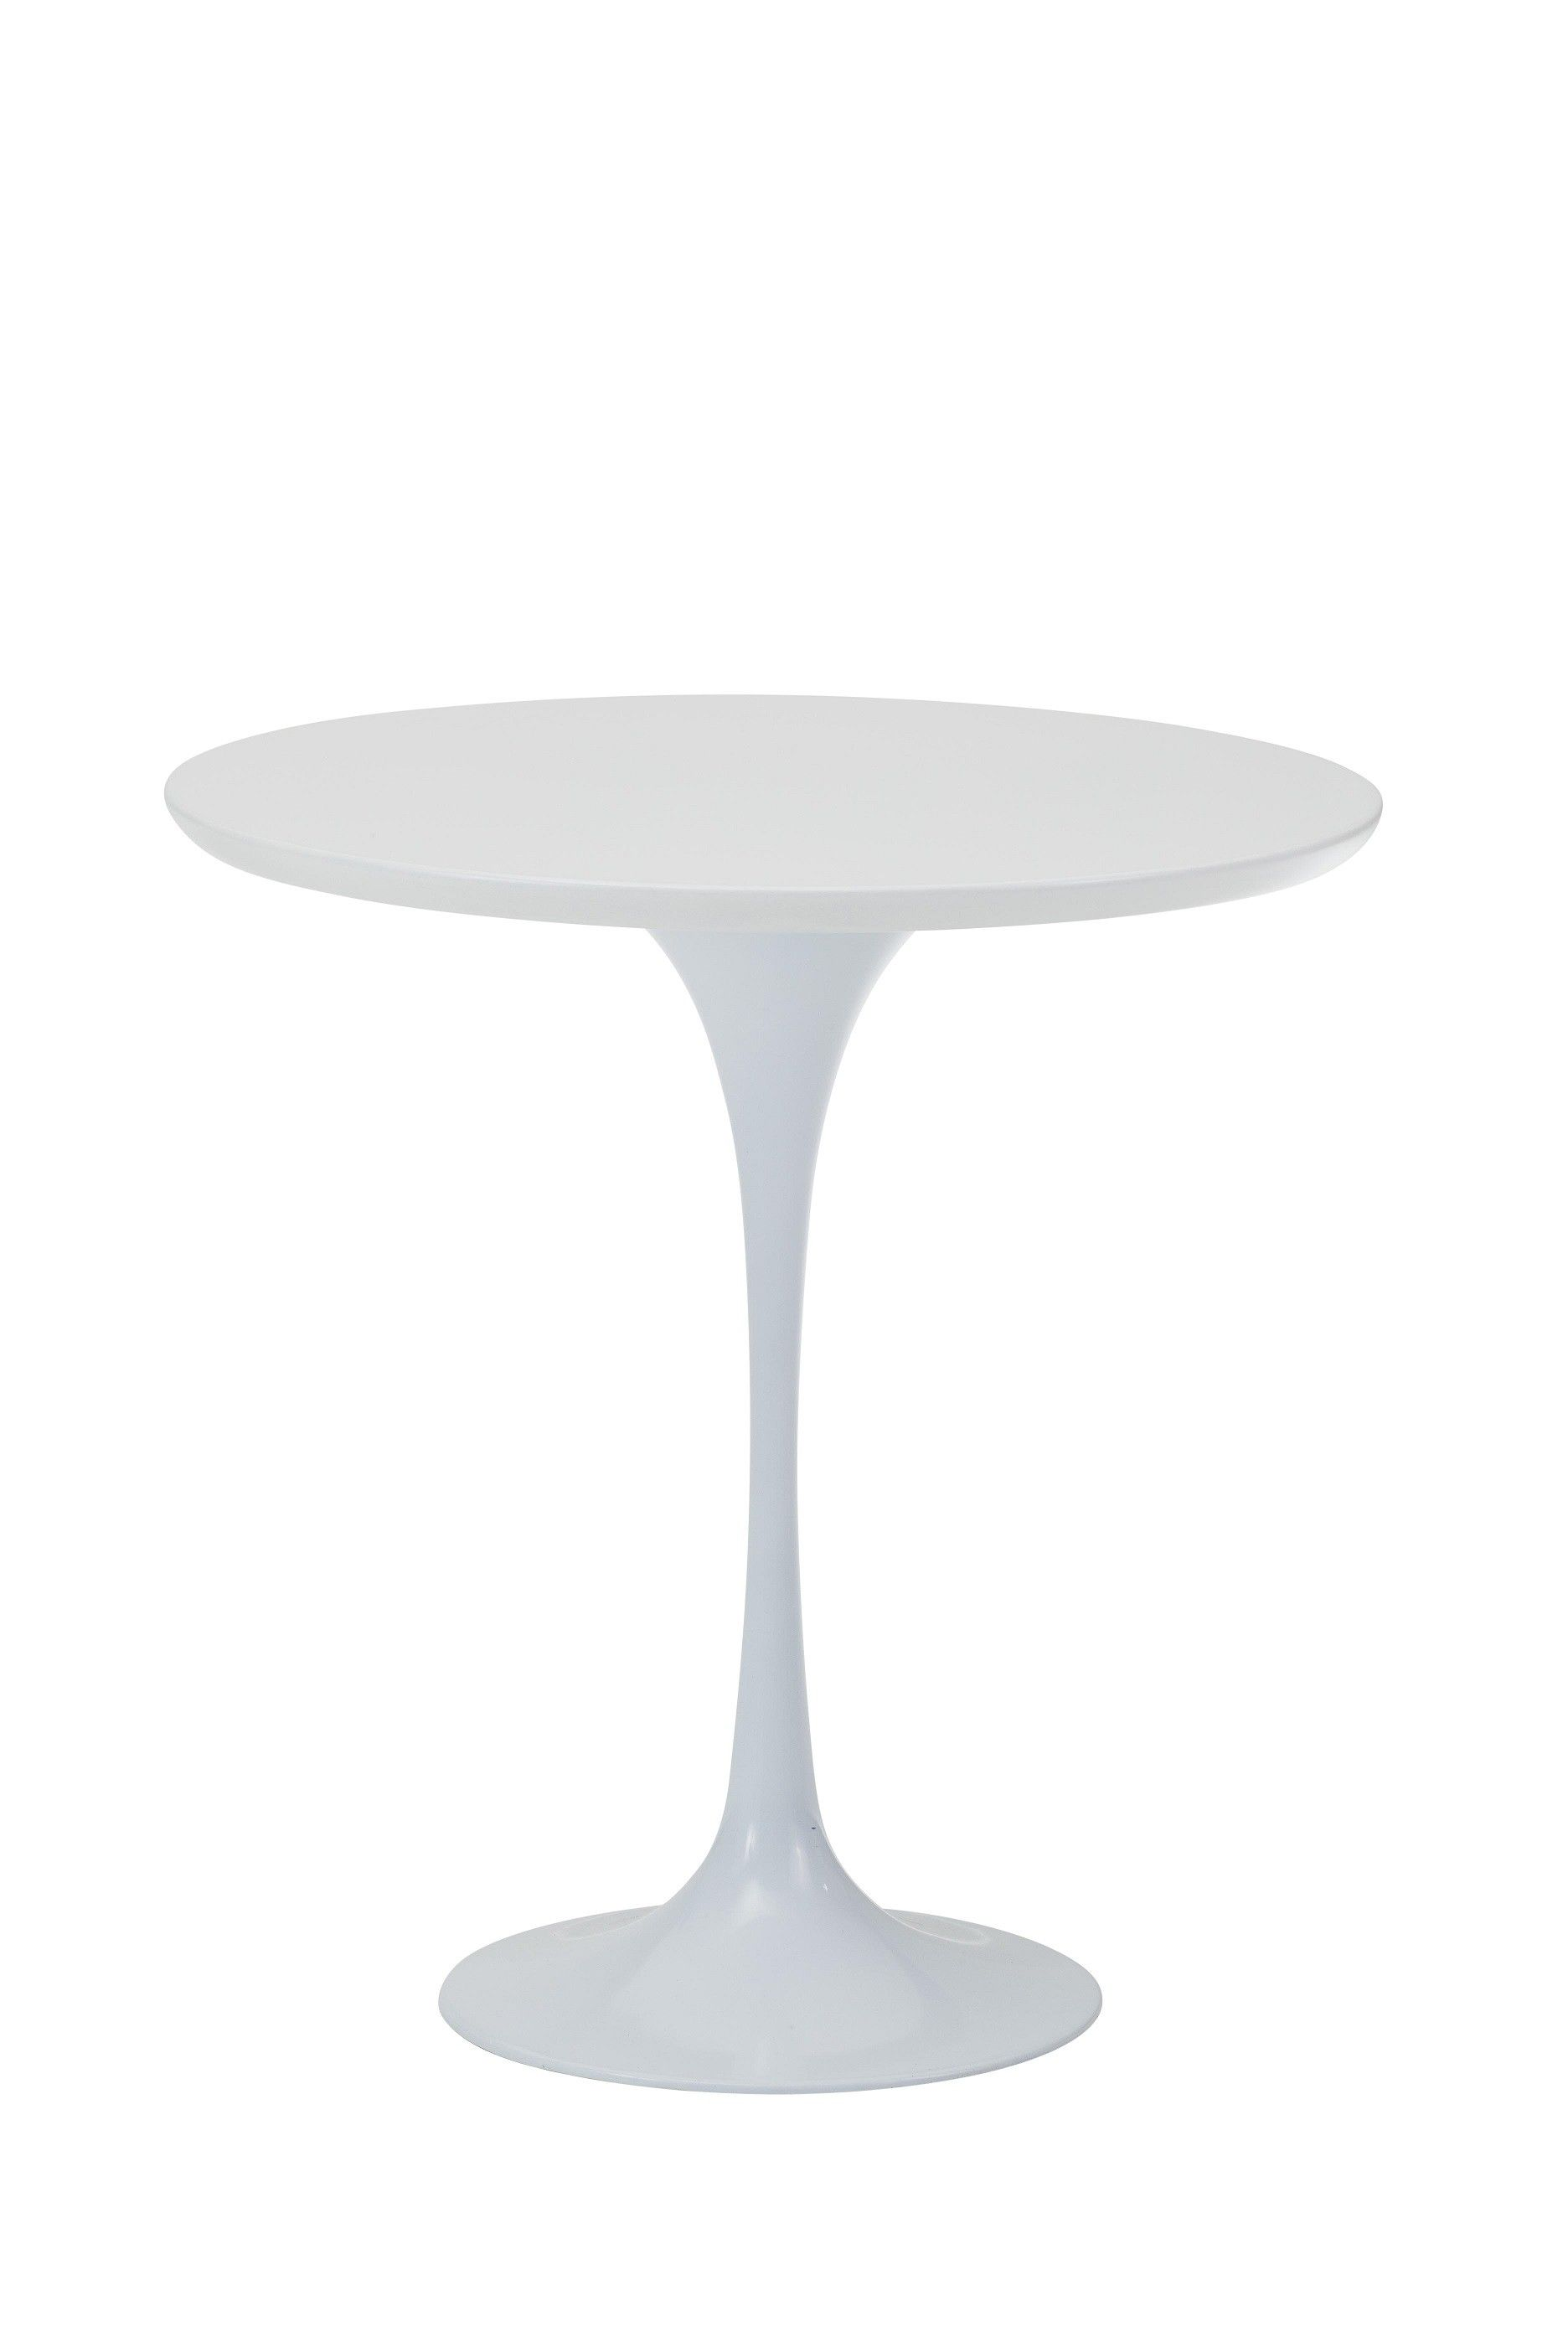 Replica Eero Saarinen Tulip Side Coffee Table   White    As One Of The Most